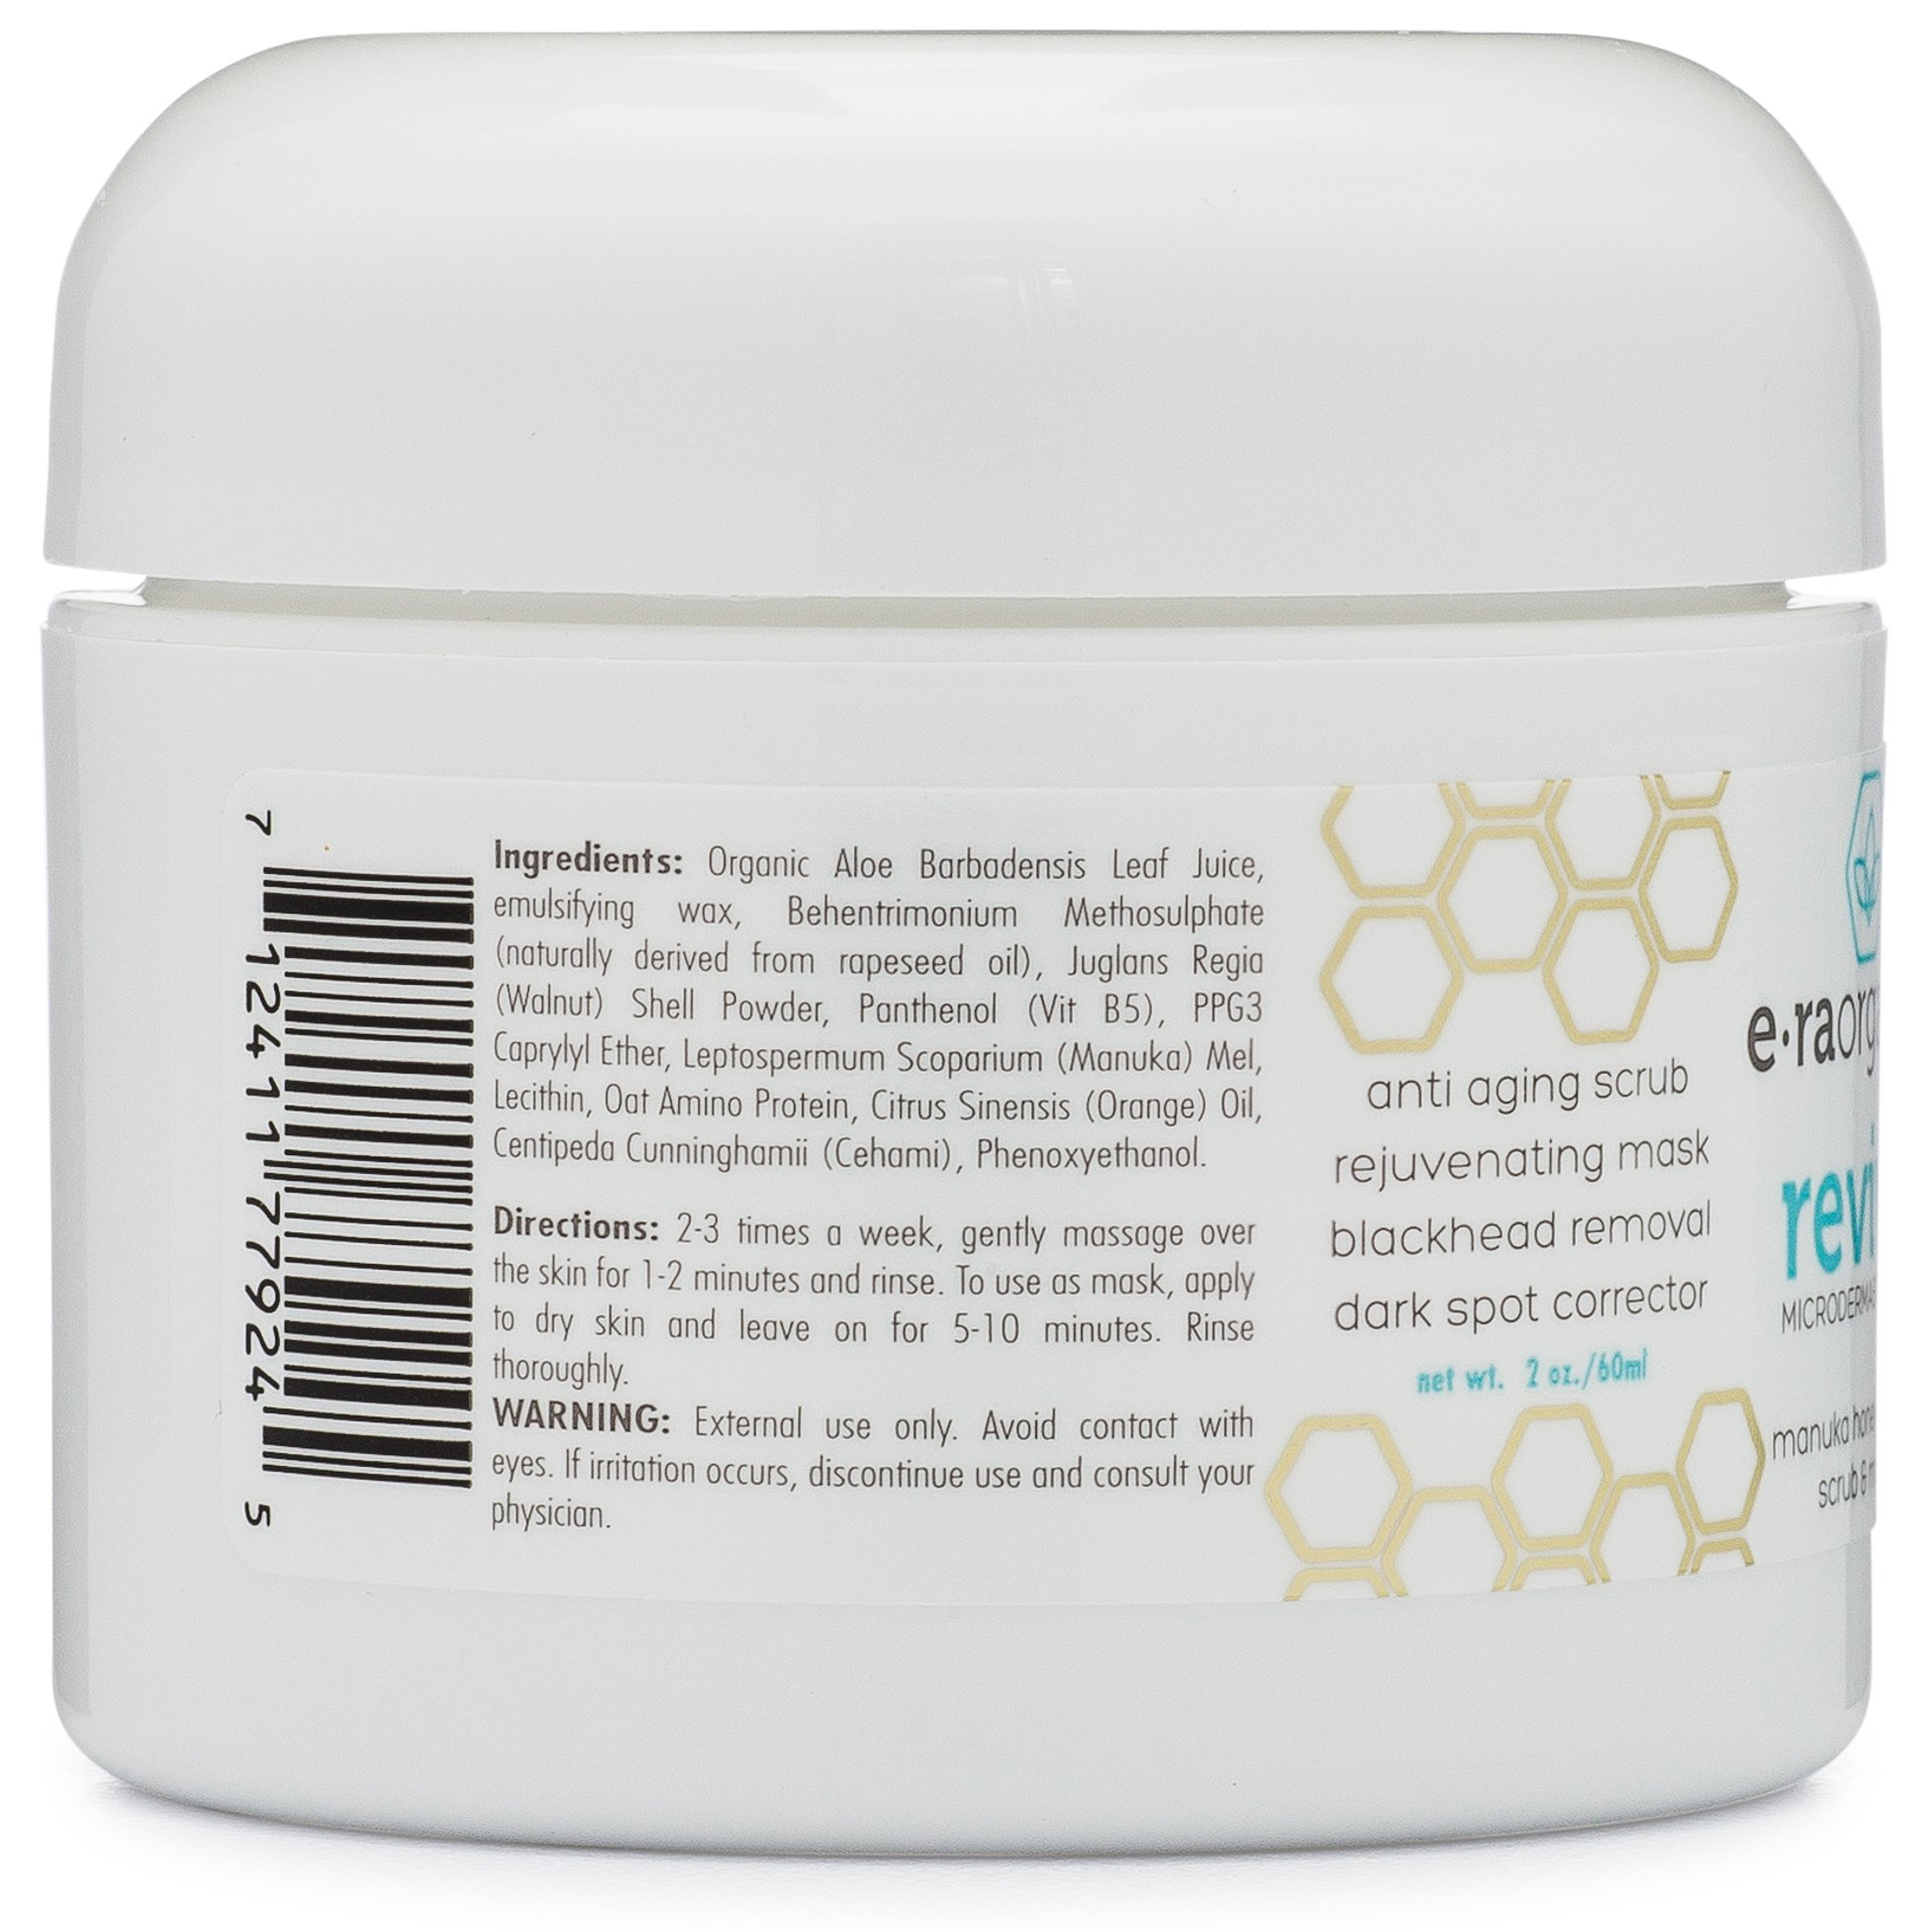 Microdermabrasion Facial Scrub & Face Exfoliator - Natural Exfoliating Face Mask with Manuka Honey & Walnut - Moisturizing Facial Exfoliant for Dull Dry Skin, Wrinkles, Acne Scars & More 2.0oz/56.6g by Era Organics (Image #9)